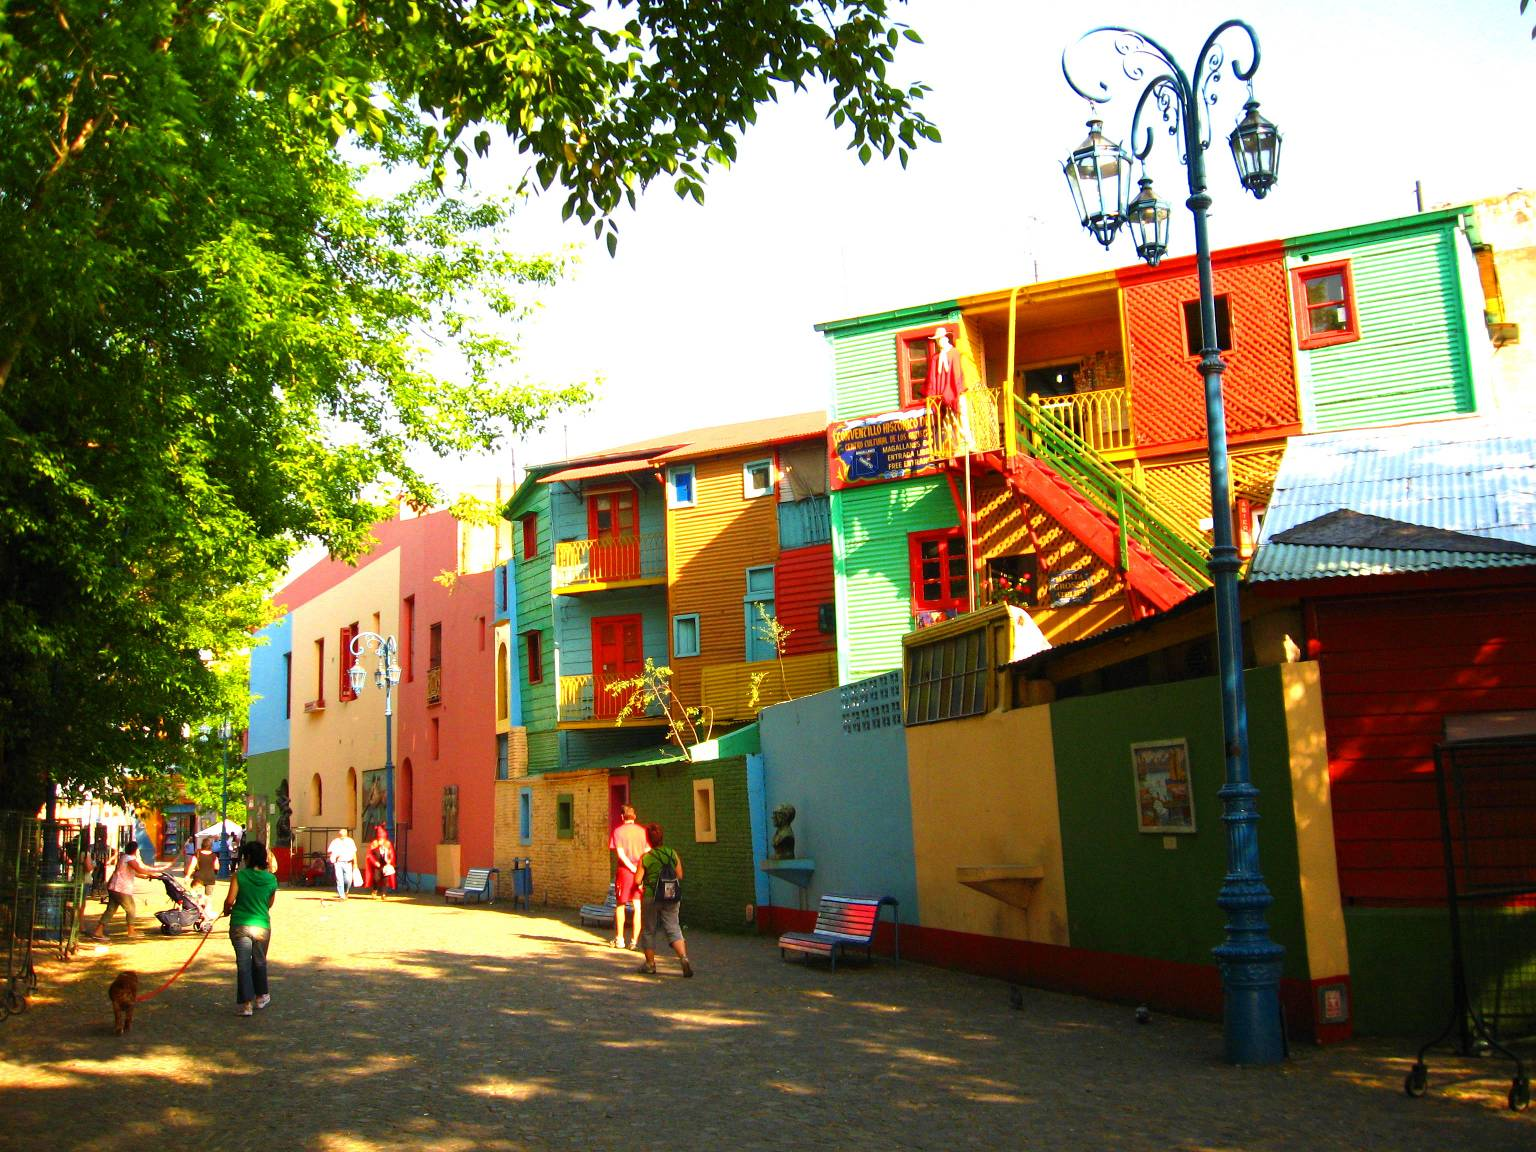 Buenos Aires Argentina  city pictures gallery : buildings in the La Boca neighborhood of Buenos Aires, Argentina ...